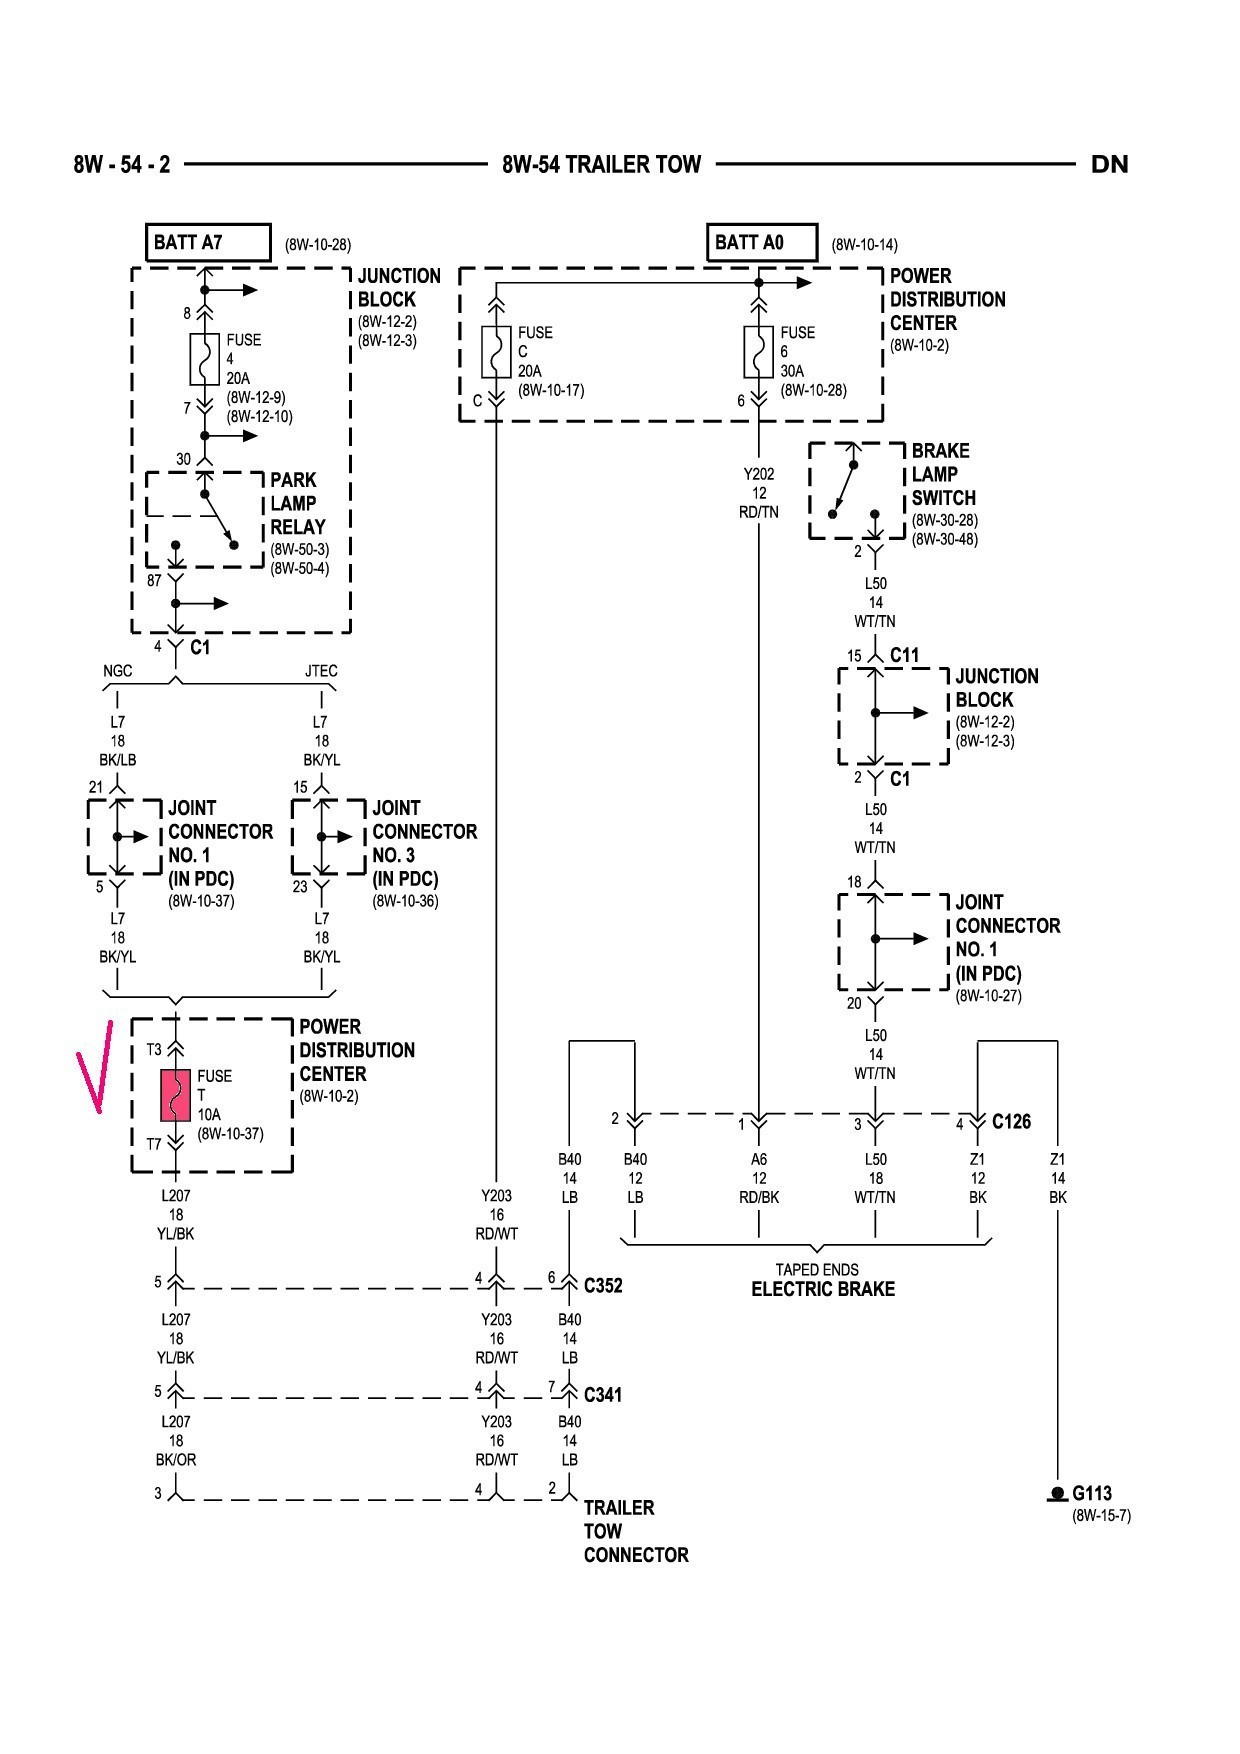 2012 dodge ram trailer wiring diagram - trailer wiring diagram for dodge  durango valid trailer wiring